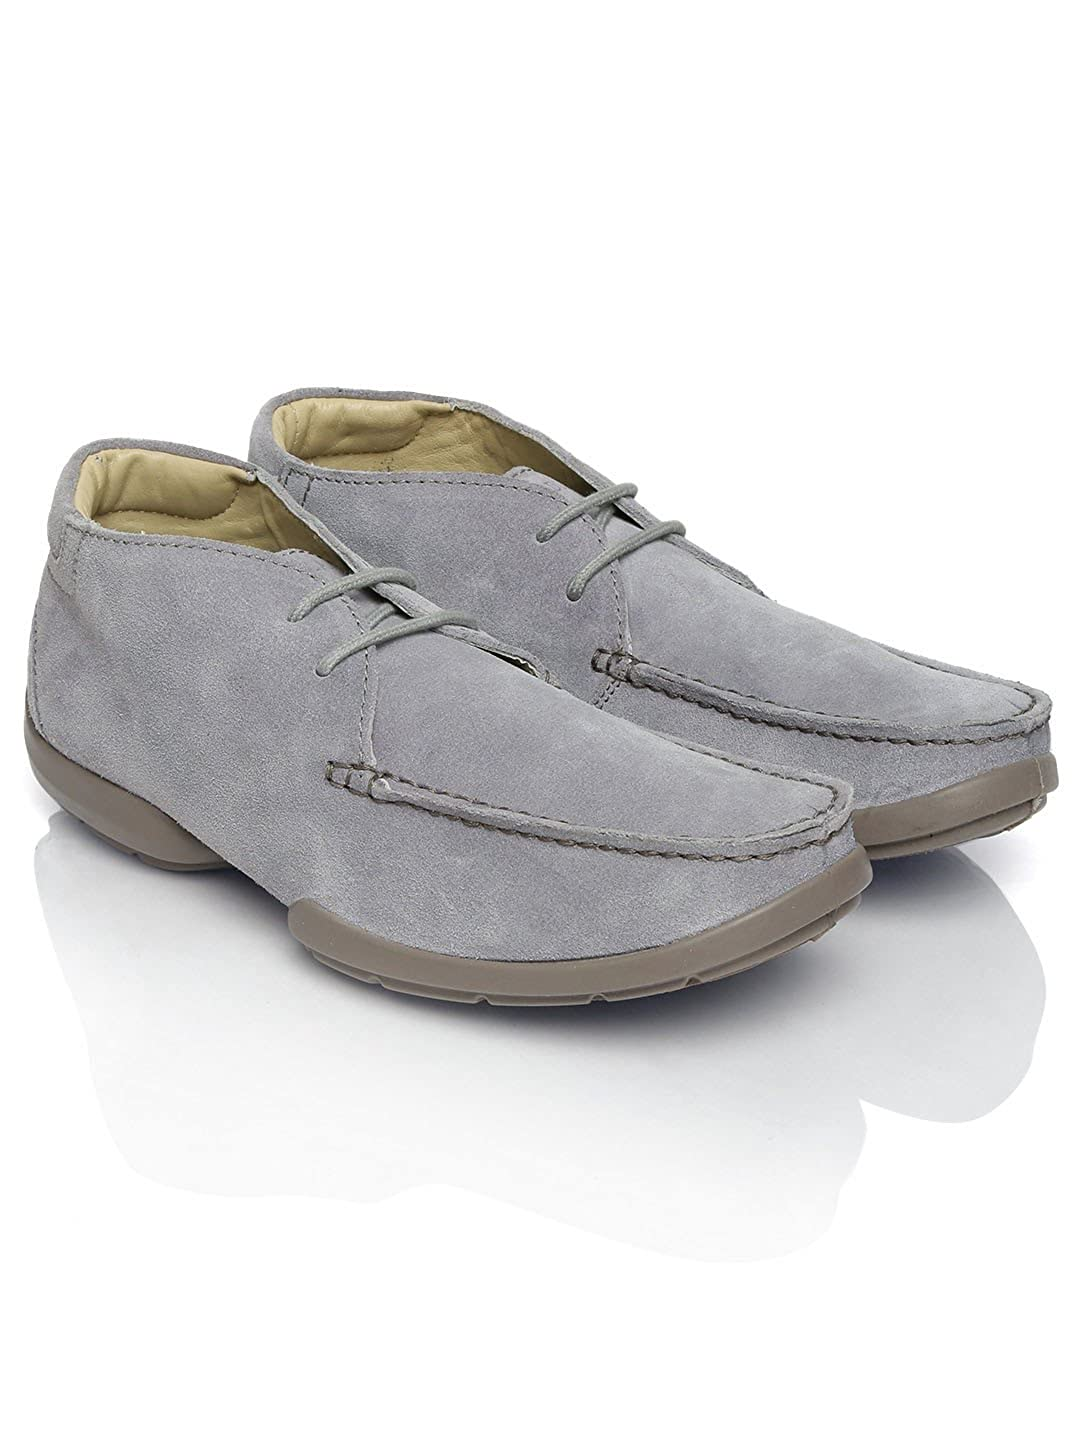 Woodland Men Grey Leather Casual Shoes